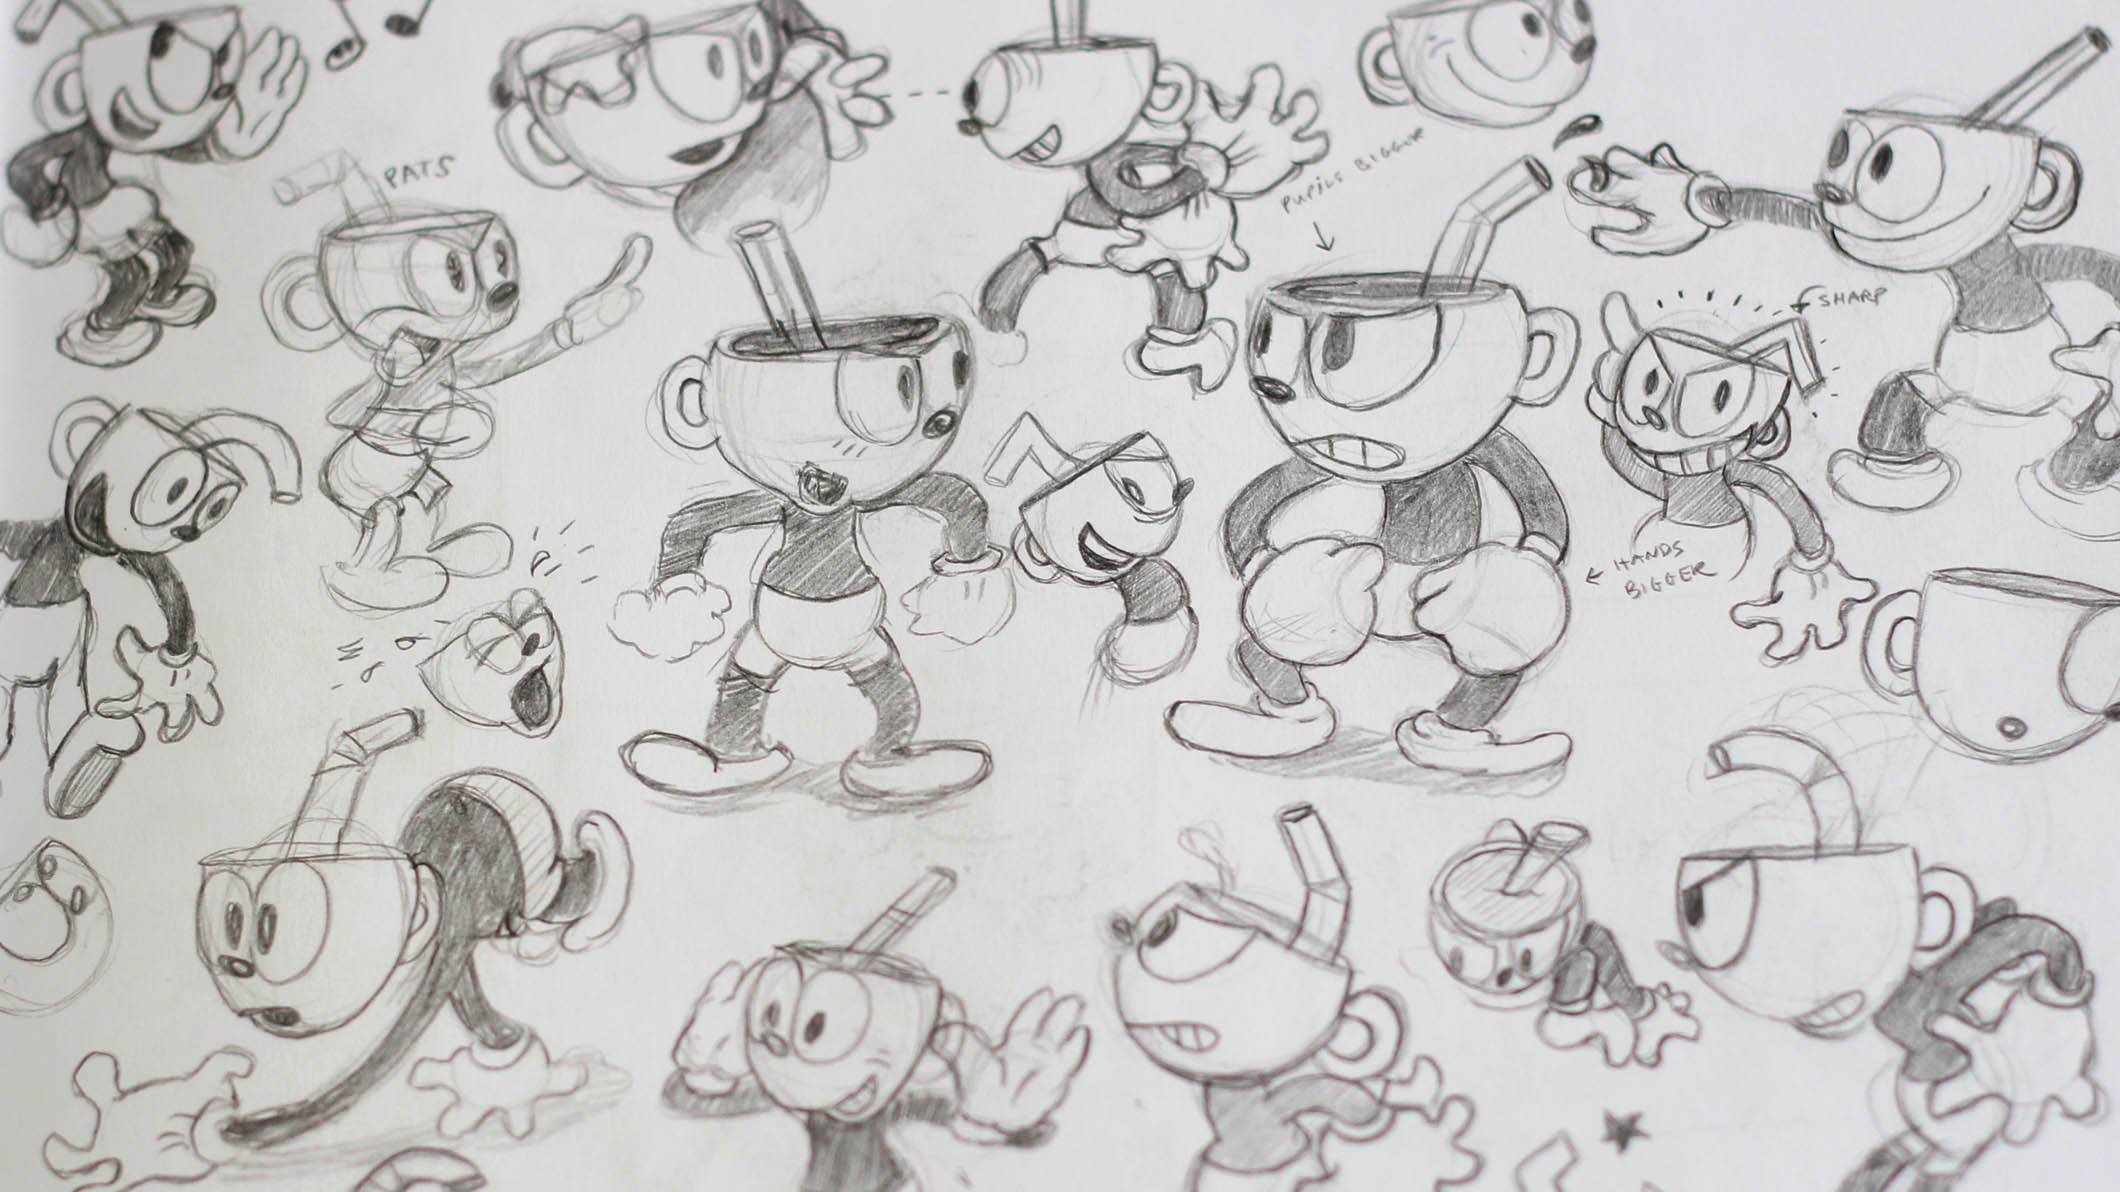 Cuphead: creating a game that looks like a 1930s cartoon